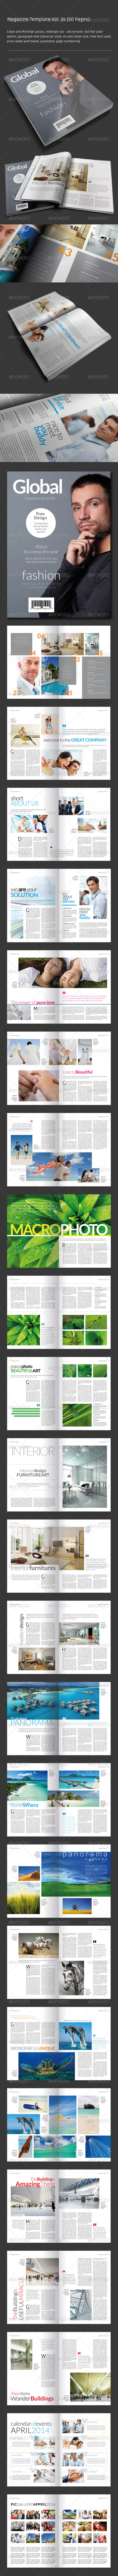 GraphicRiver InDesign Magazine Template Vol 14 50 Pages 5012253